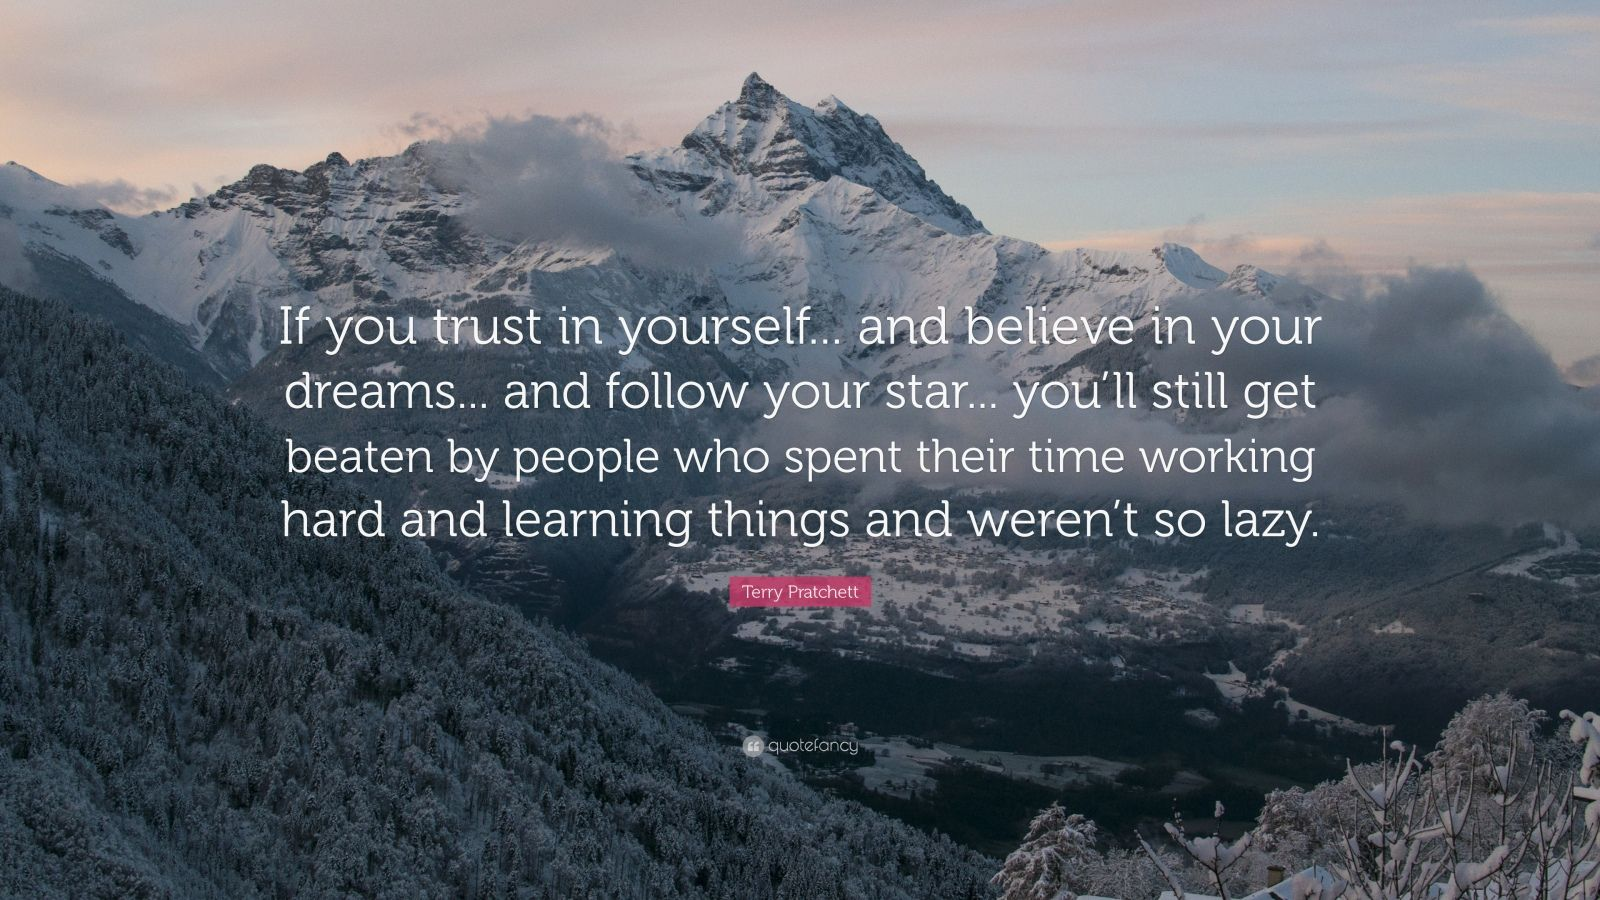 "Terry Pratchett Quote: ""If you trust in yourself... and believe in your dreams... and follow your star... you'll still get beaten by people who spent their time working hard and learning things and weren't so lazy."""